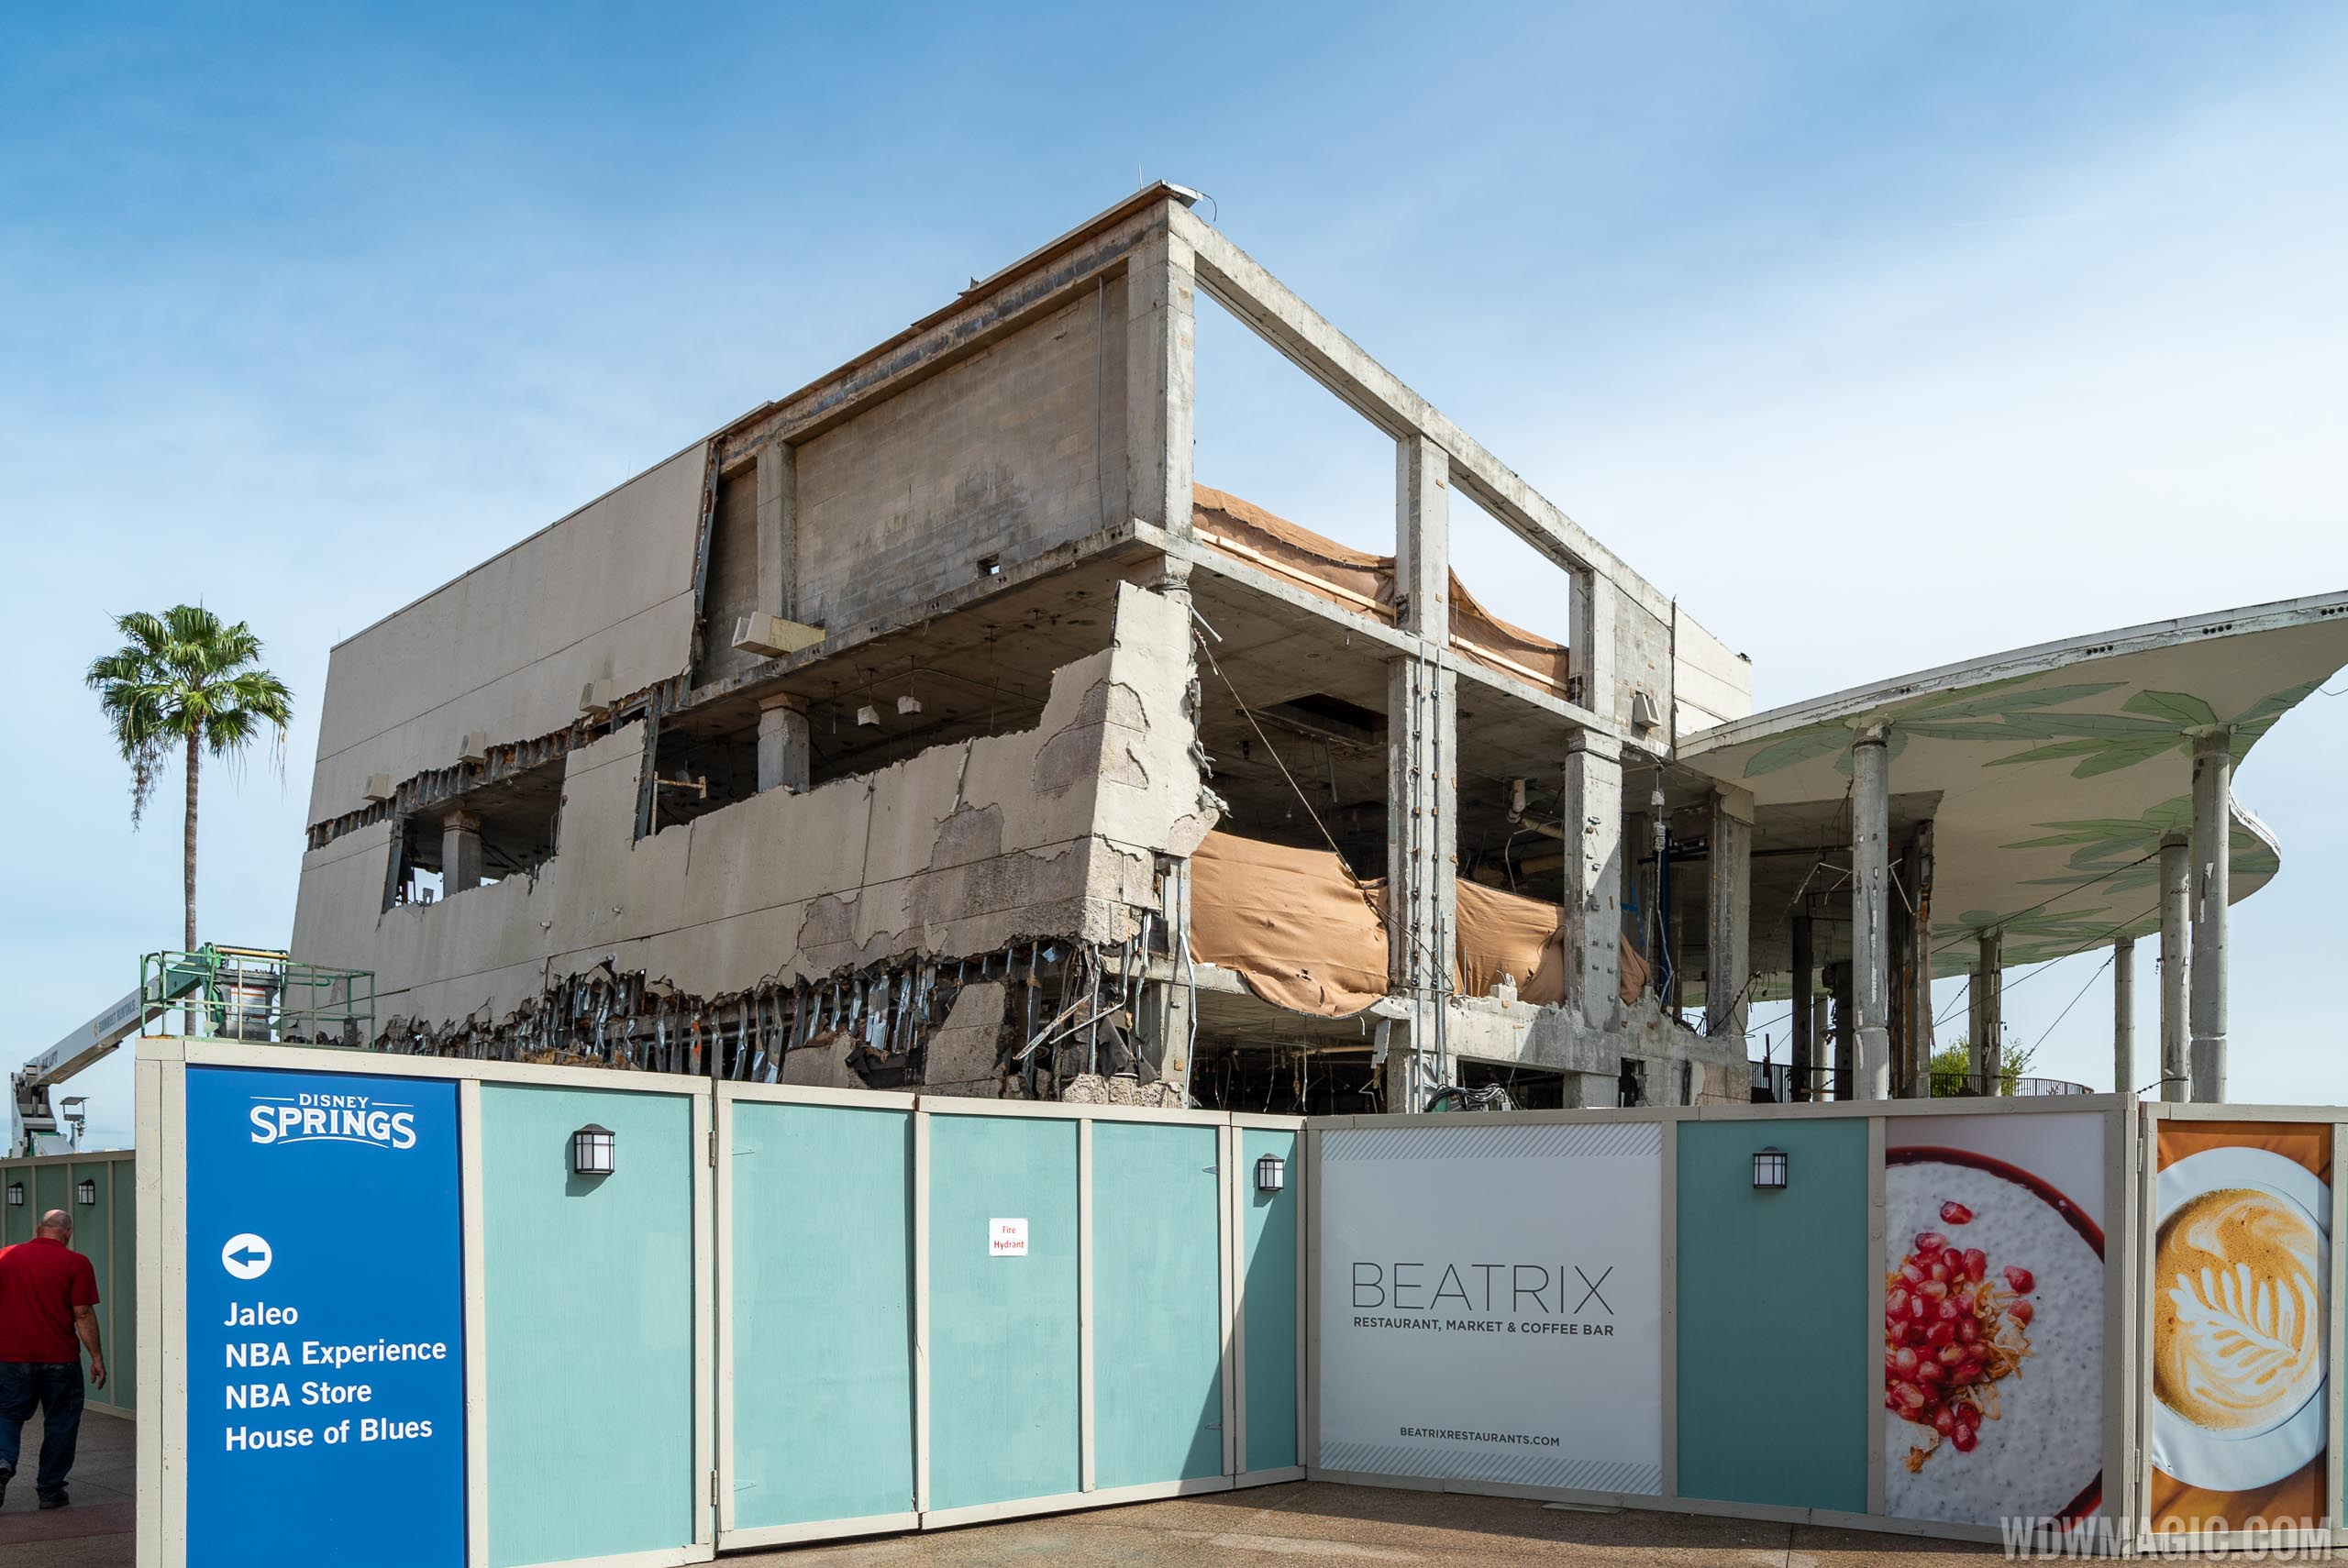 Bongo's Demolition - November 2019